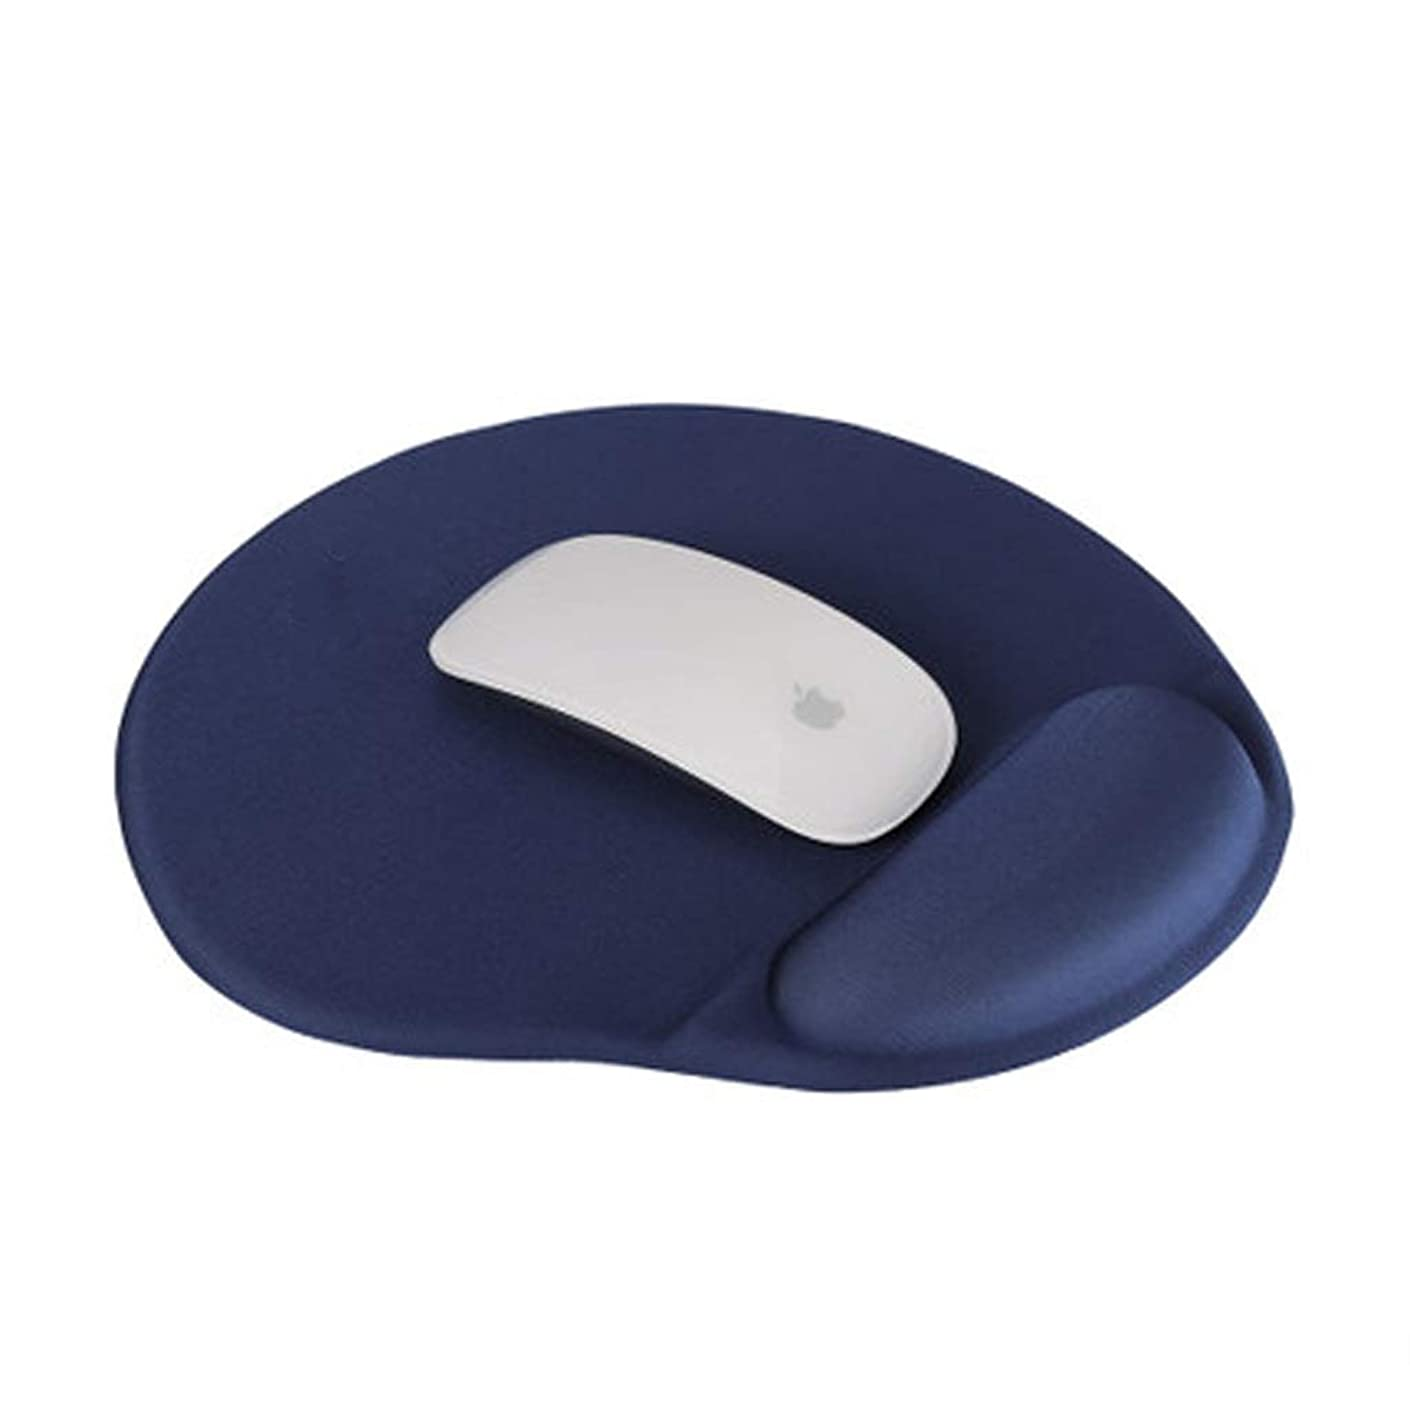 LLSDLS Notebook Mouse Pad Protection Wrist Support Wrist Pad Men and Women Computer Game Memory Cotton Mouse Pad (Color : Blue)